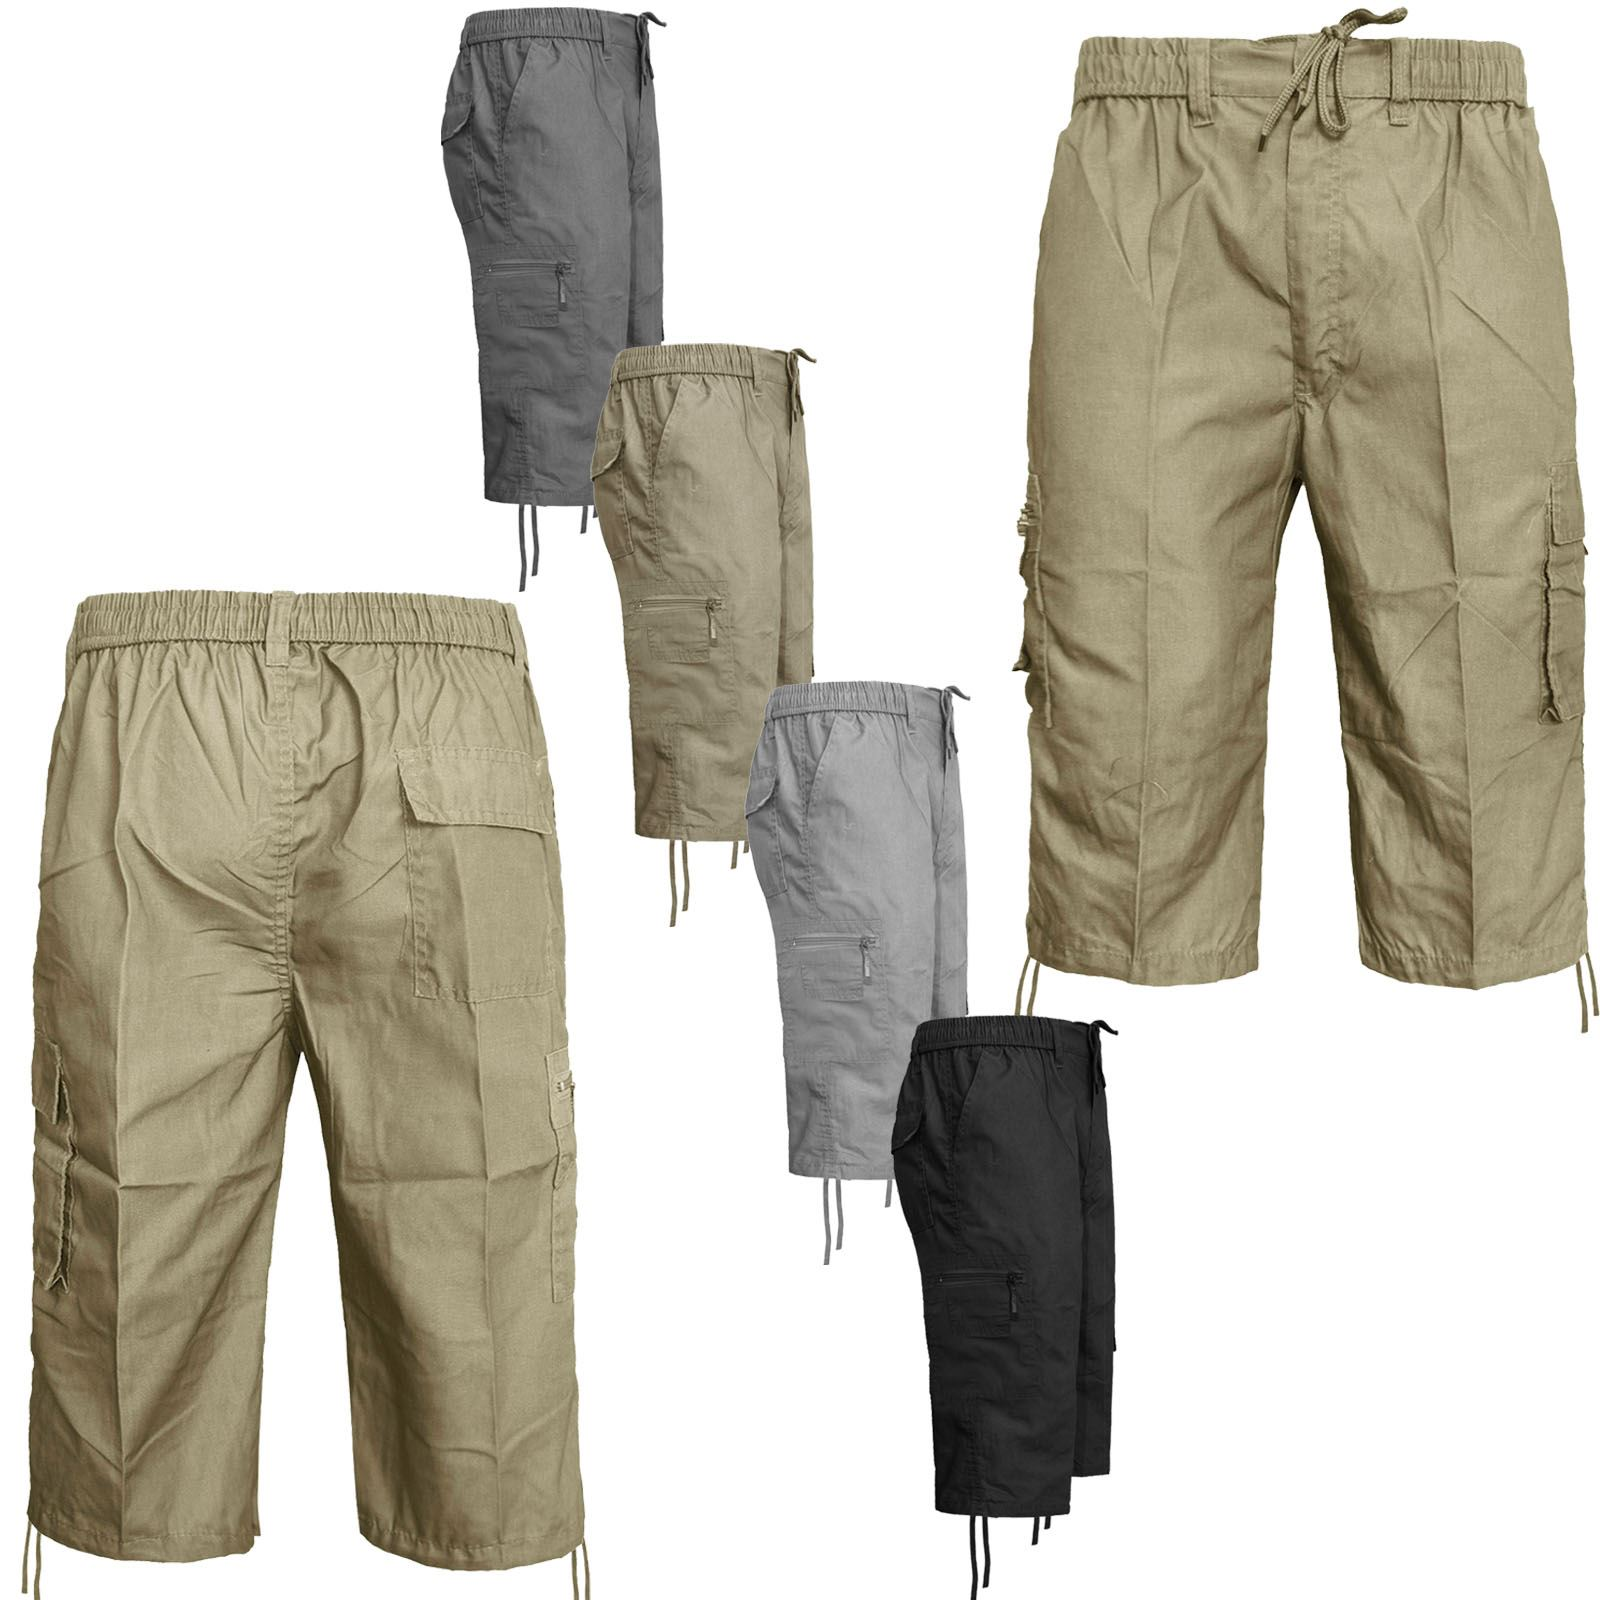 shopnow-vjpmehag.cf: mens 3/4 pants. From The Community. Fashion summer military 3/4 length cargo pants are neither baggy nor LASIUMIAT Mens Summer Capri Pants 3/4 Loose-Fit Casual Work Pants Outdoor Sports Hiking Cycling Cropped Trousers. by LASIUMIAT. $ - $ $ .